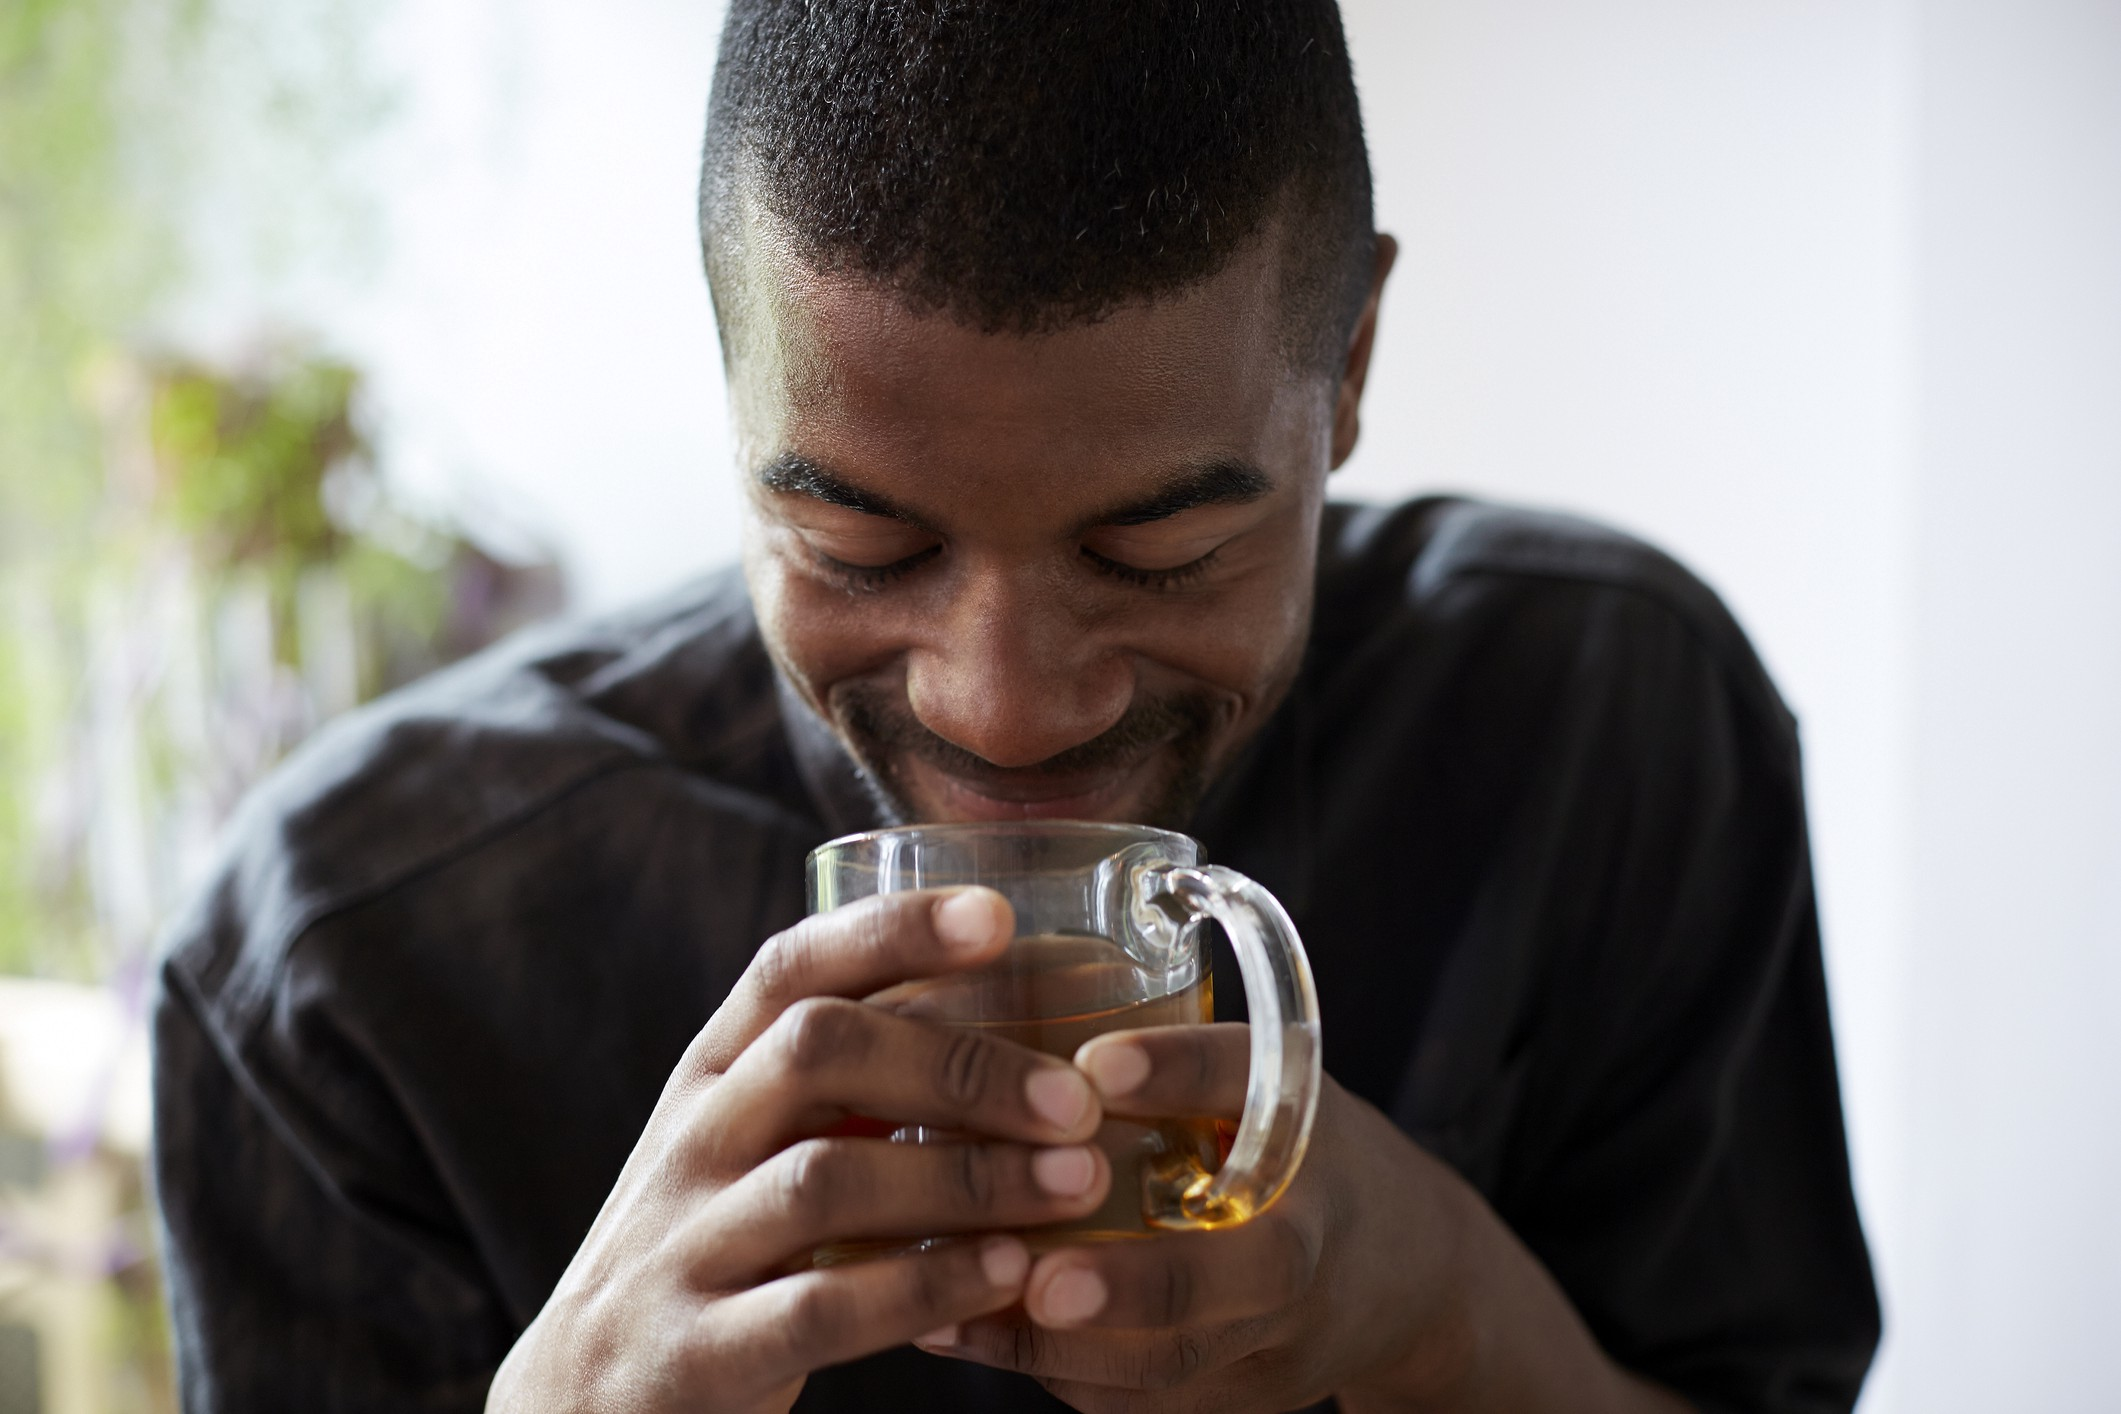 Black man smiling over a cup of tea.